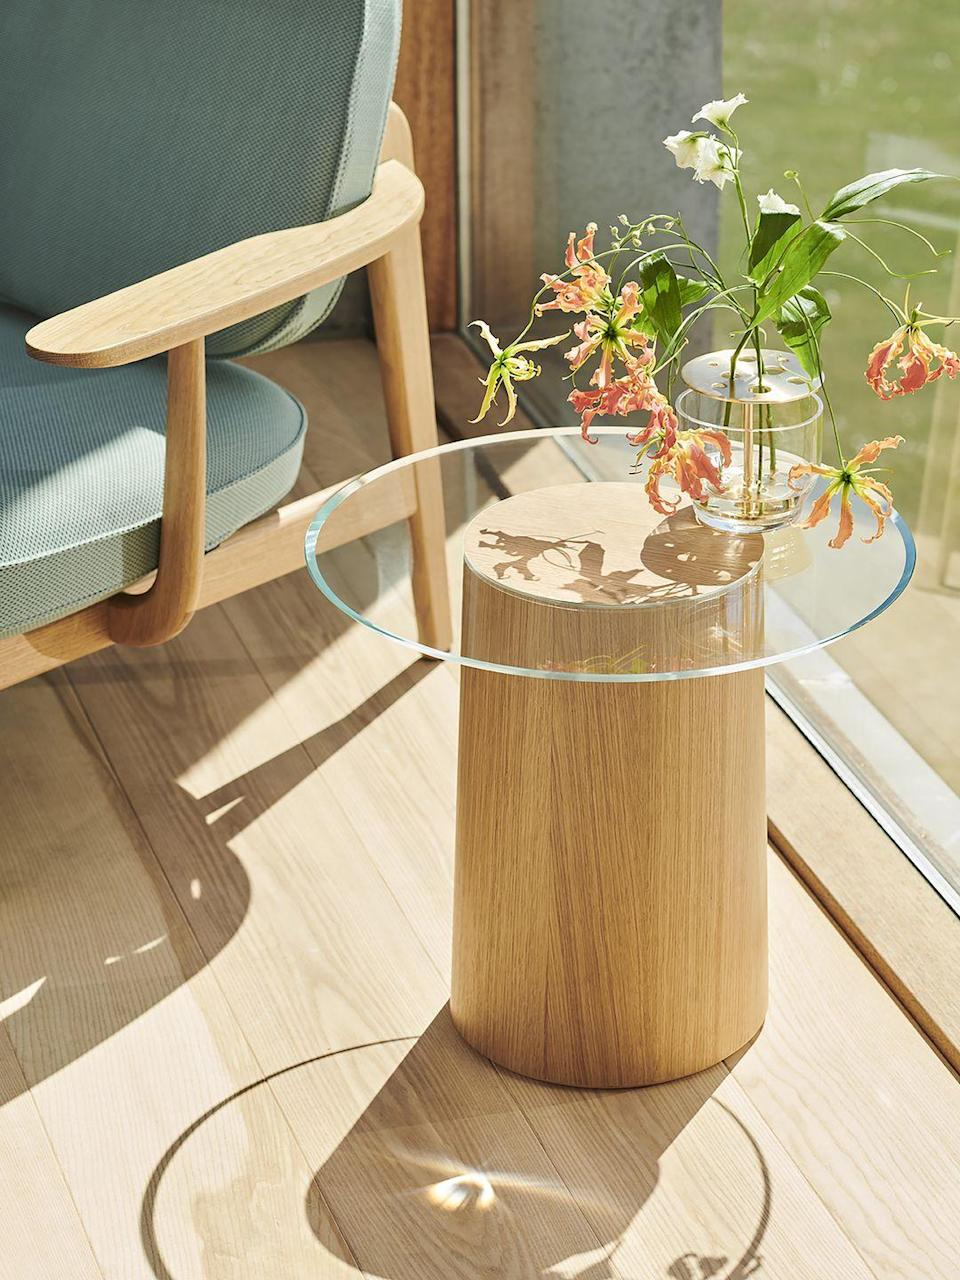 """<p>Inspired by a wooden 'stump' – 'stub' is Danish for stump – this simple side table required a series of experiments to master the joining of materials without any glue or visible fixings. The glass and base are cut at a 45-degree angle so they lock into position smoothly. £507, <a href=""""https://www.fritzhansen.com"""" rel=""""nofollow noopener"""" target=""""_blank"""" data-ylk=""""slk:fritzhansen.com"""" class=""""link rapid-noclick-resp"""">fritzhansen.com</a></p>"""